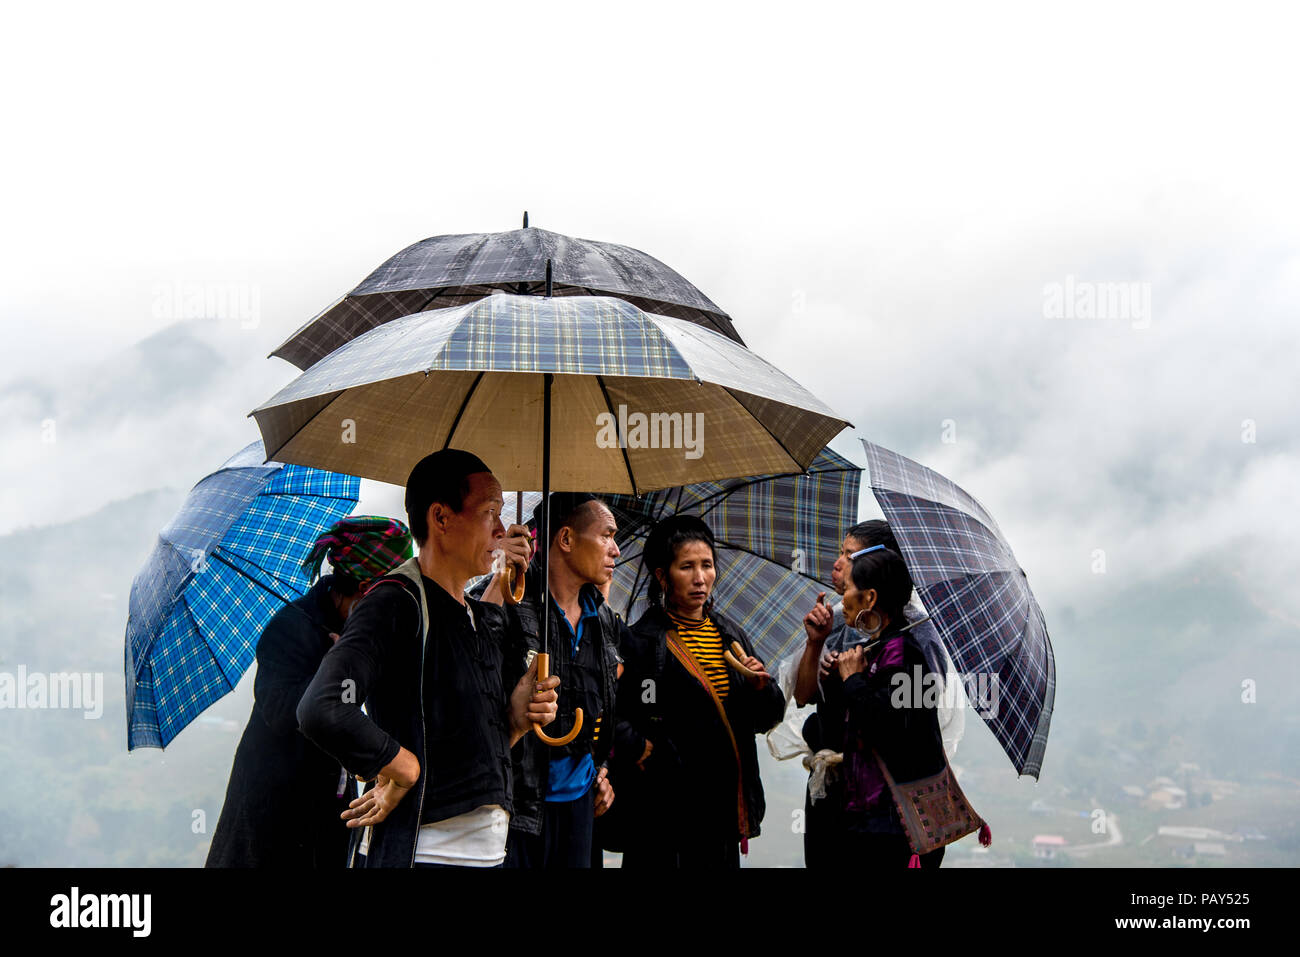 SAPA, VIETNAM - JANUARY 12, 2017: Ethnic Hmong people are under umbrellas because of a strong rain in Ta Van village, Sapa, Vietnam. - Stock Image